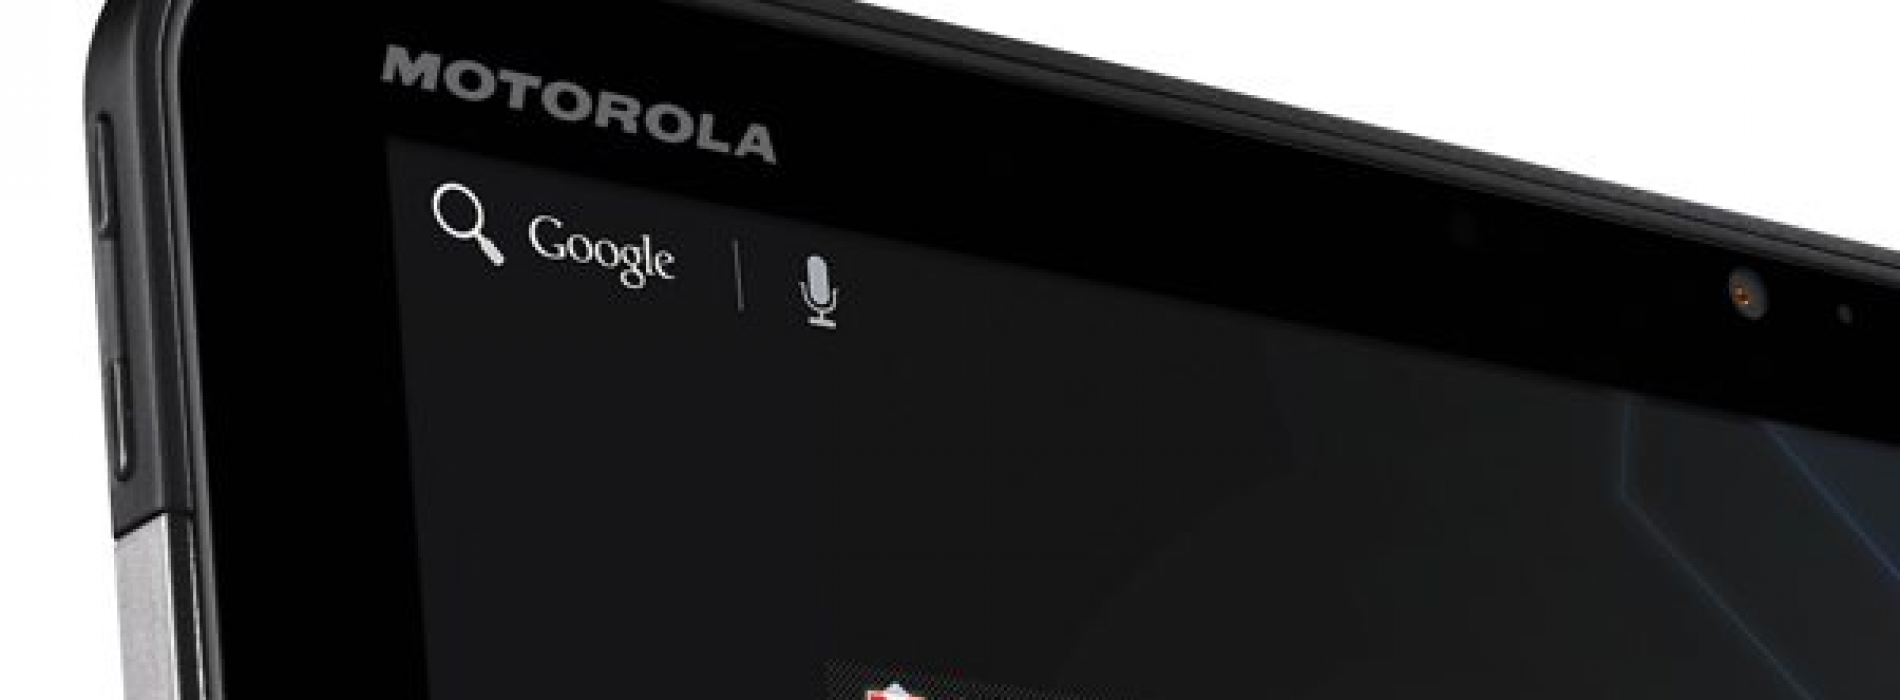 Email hints at Android 4.0 for the Motorola Xoom